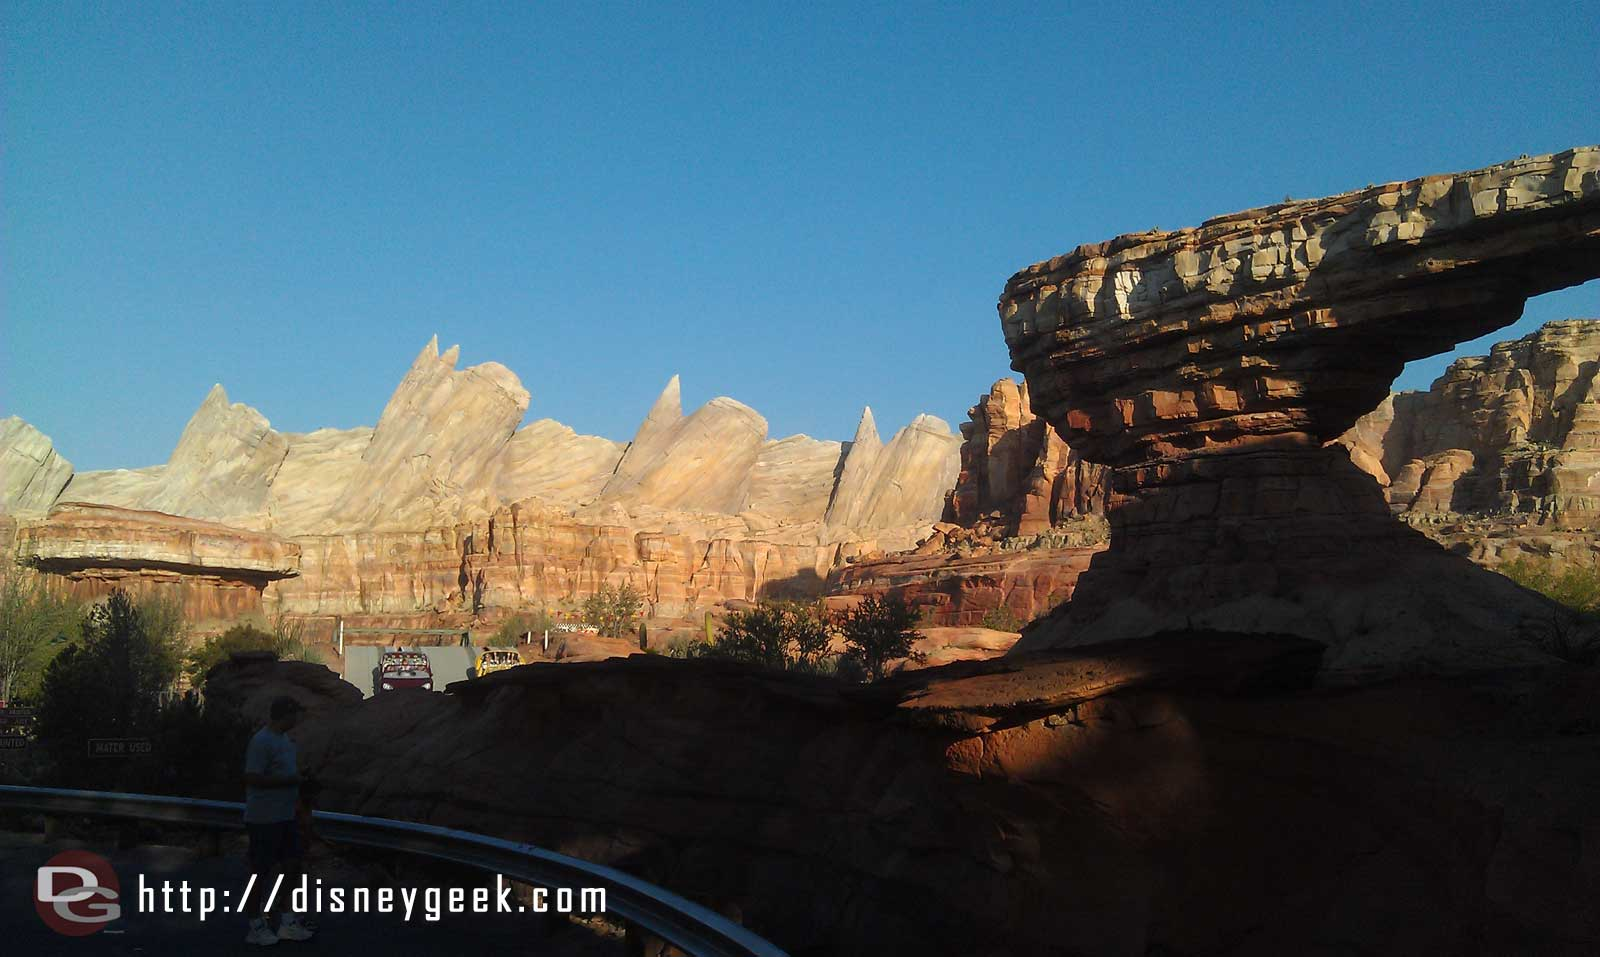 Heading into #CarsLand